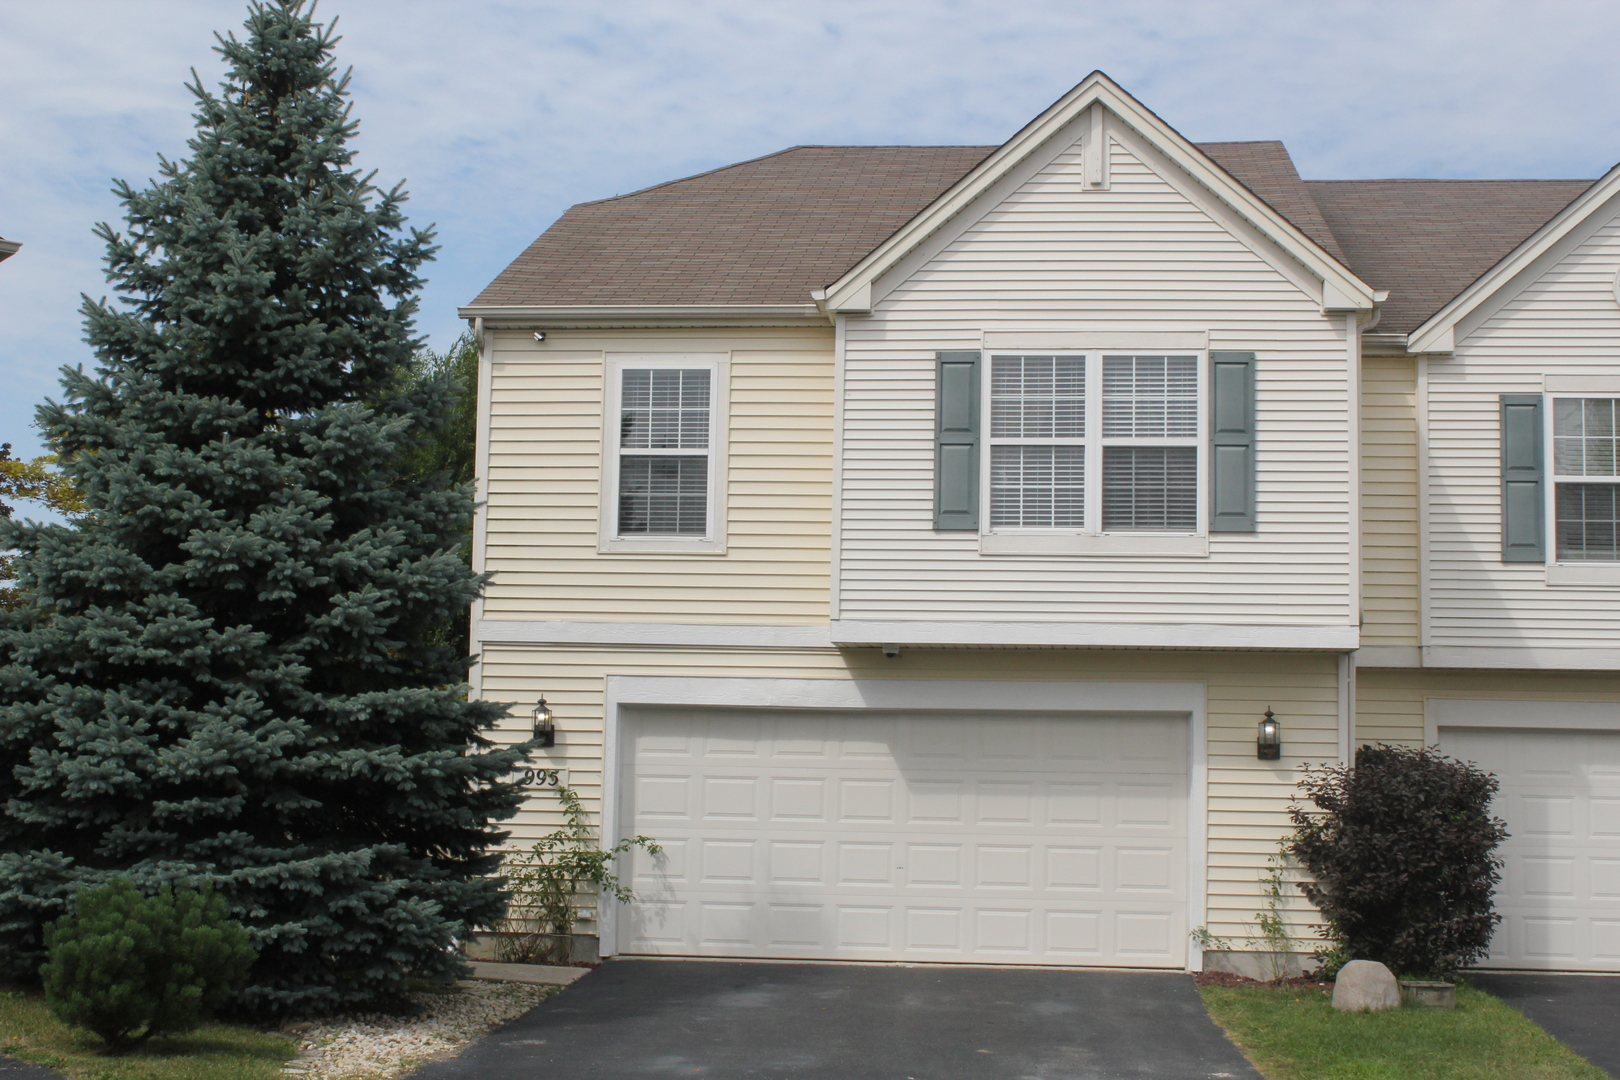 One of Joliet 3 Bedroom Homes for Sale at 995 Timber Springs Court